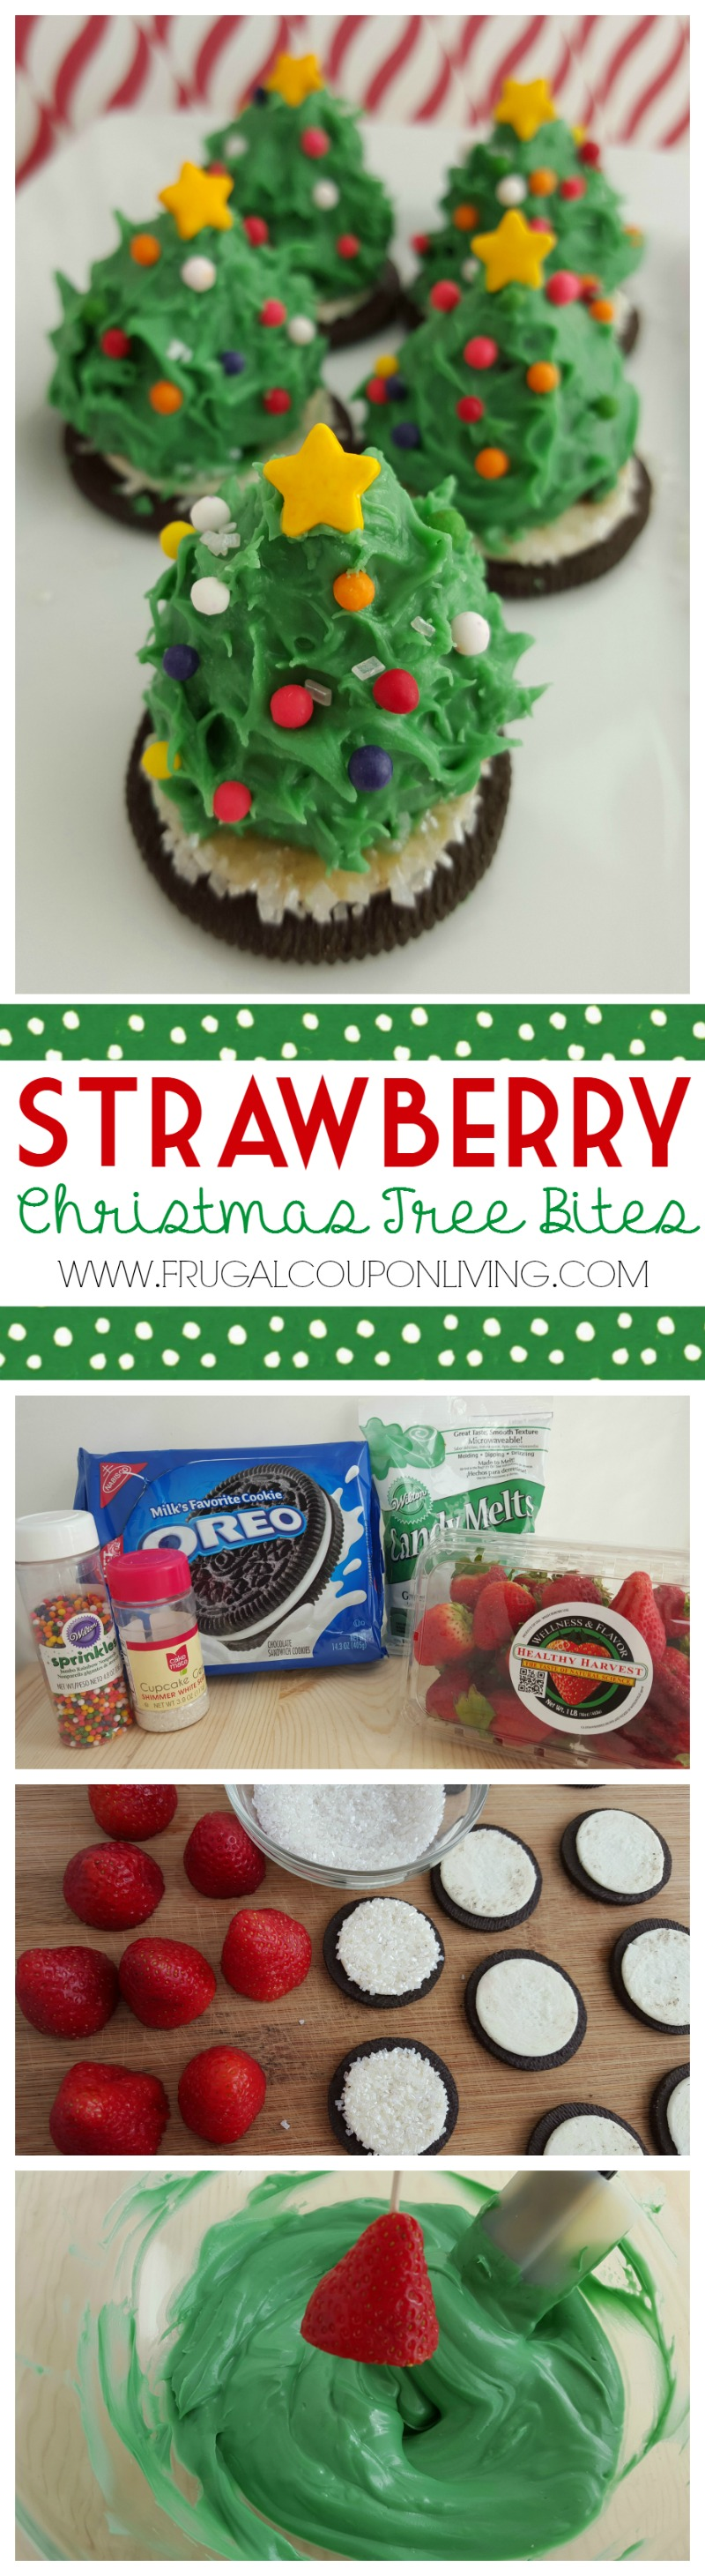 Strawberry Christmas Tree Bites Collage on Frugal Coupon Living